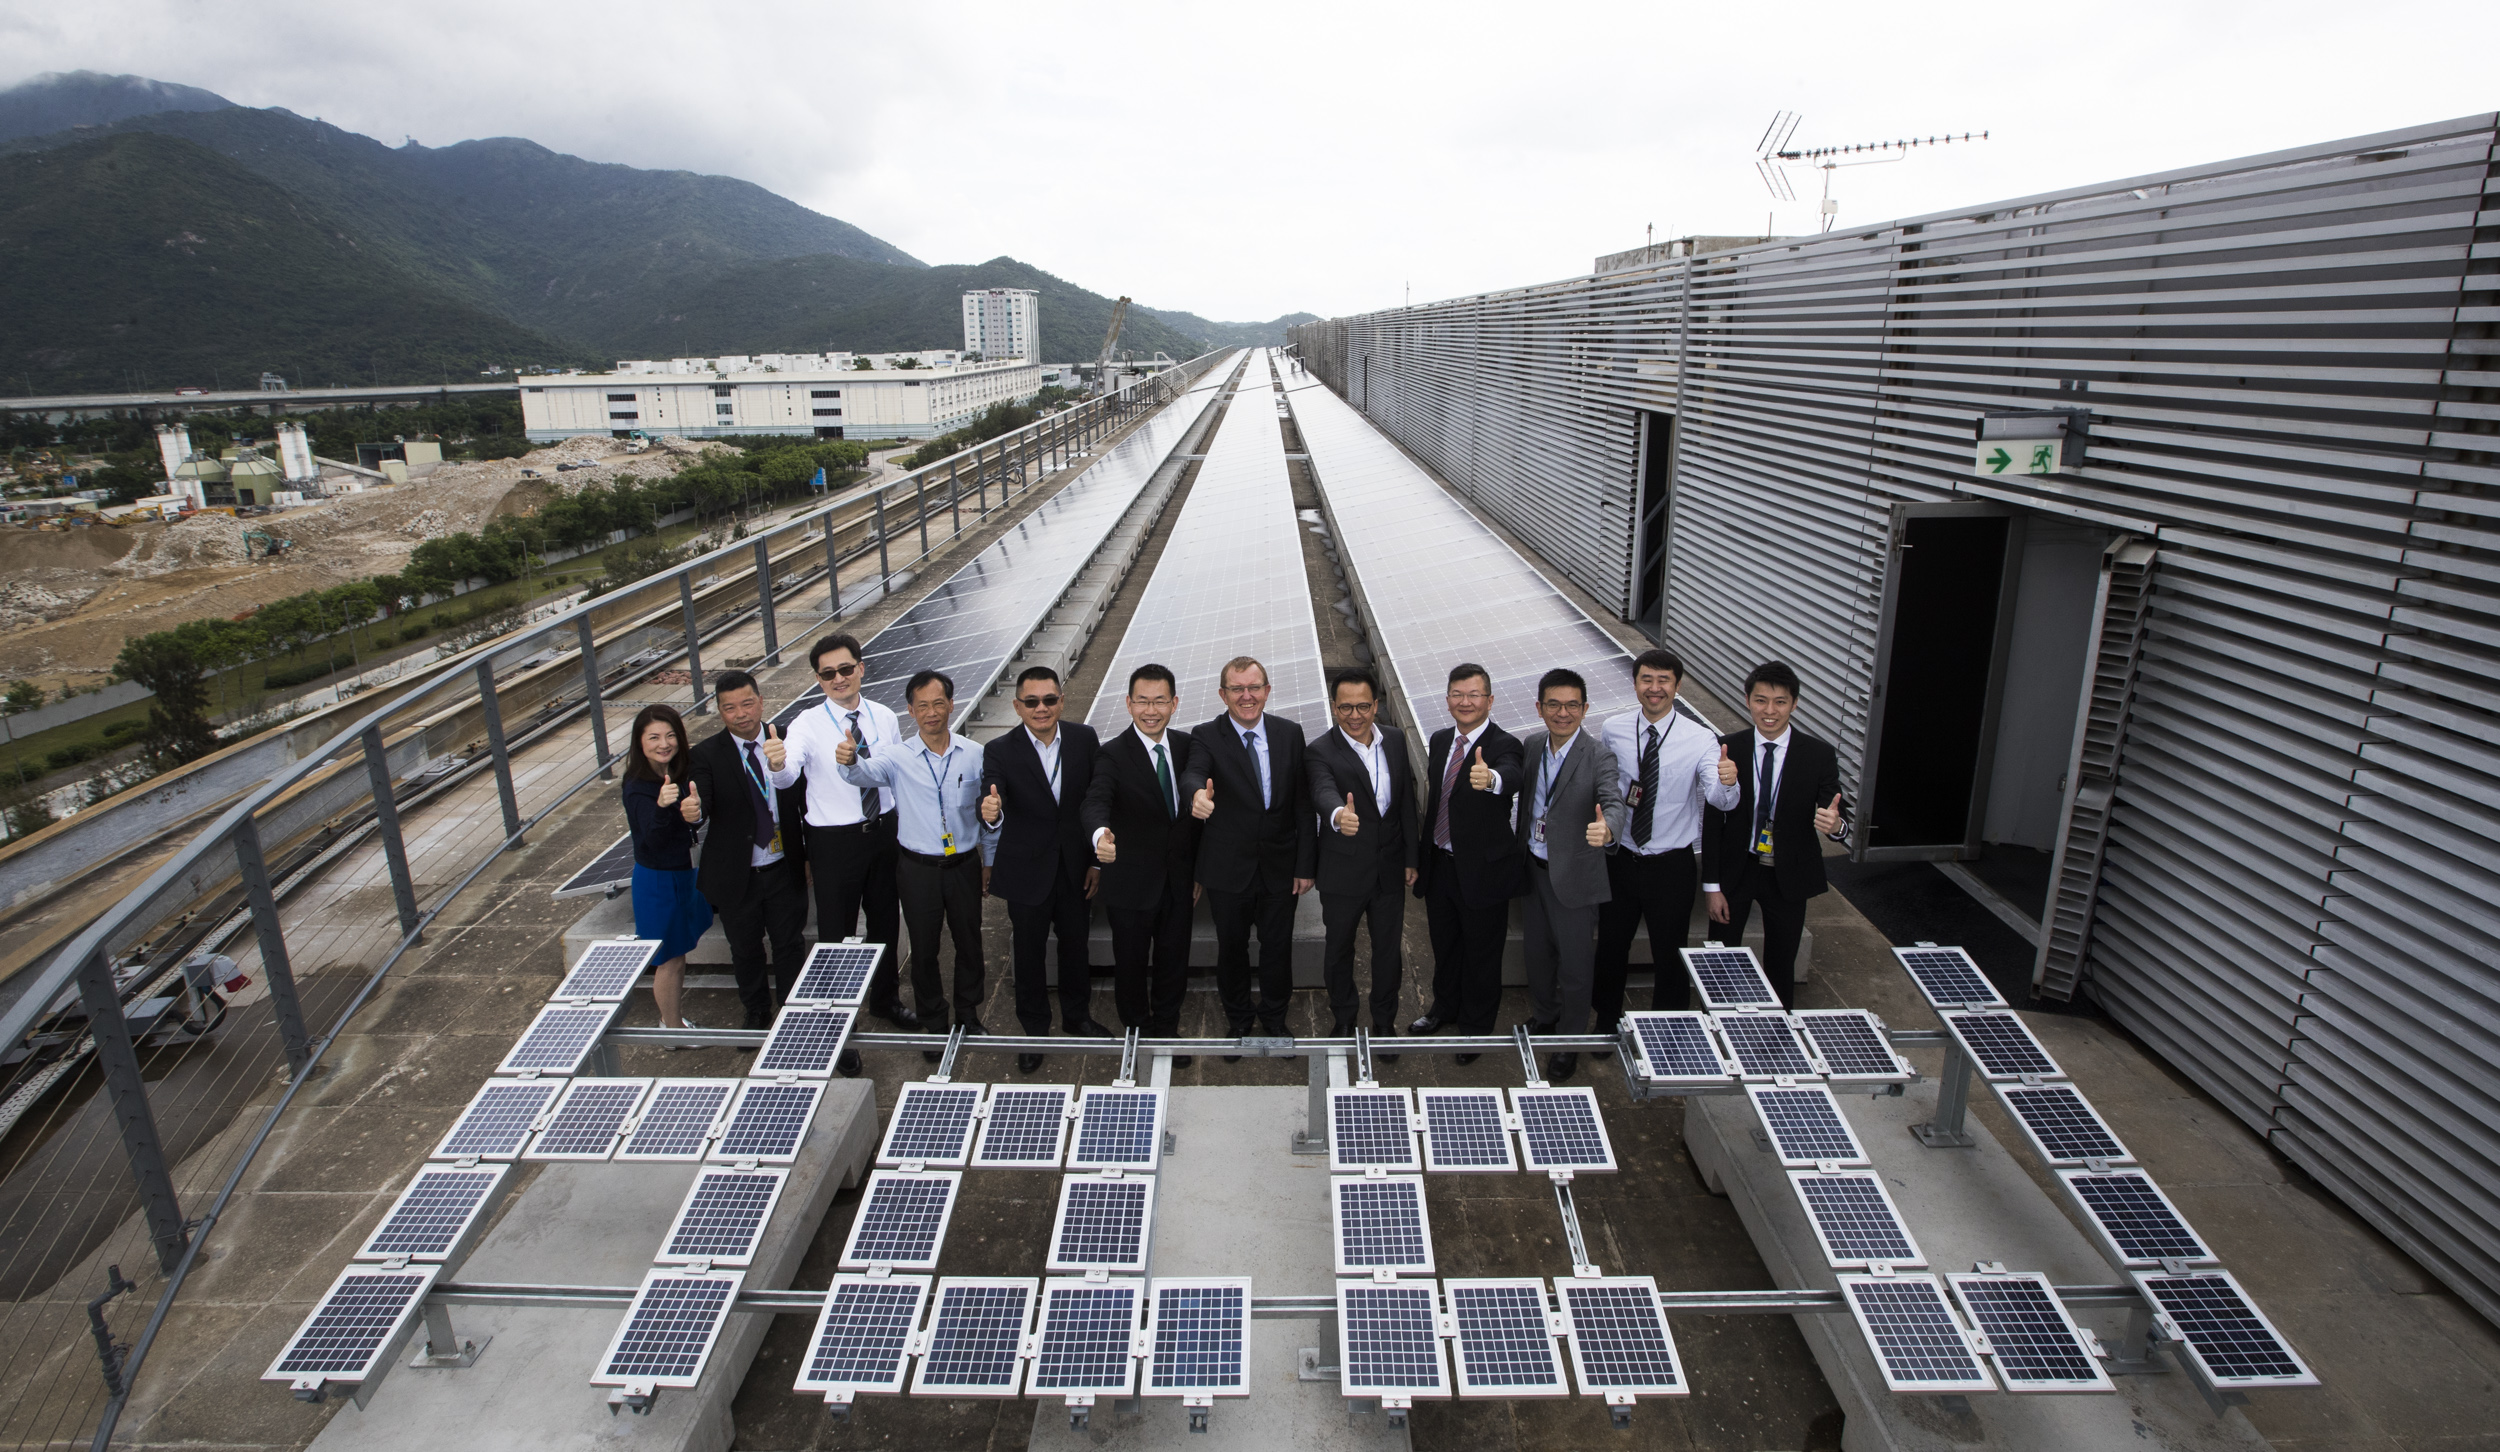 Hactl celebrates commissioning of its rooftop solar farm